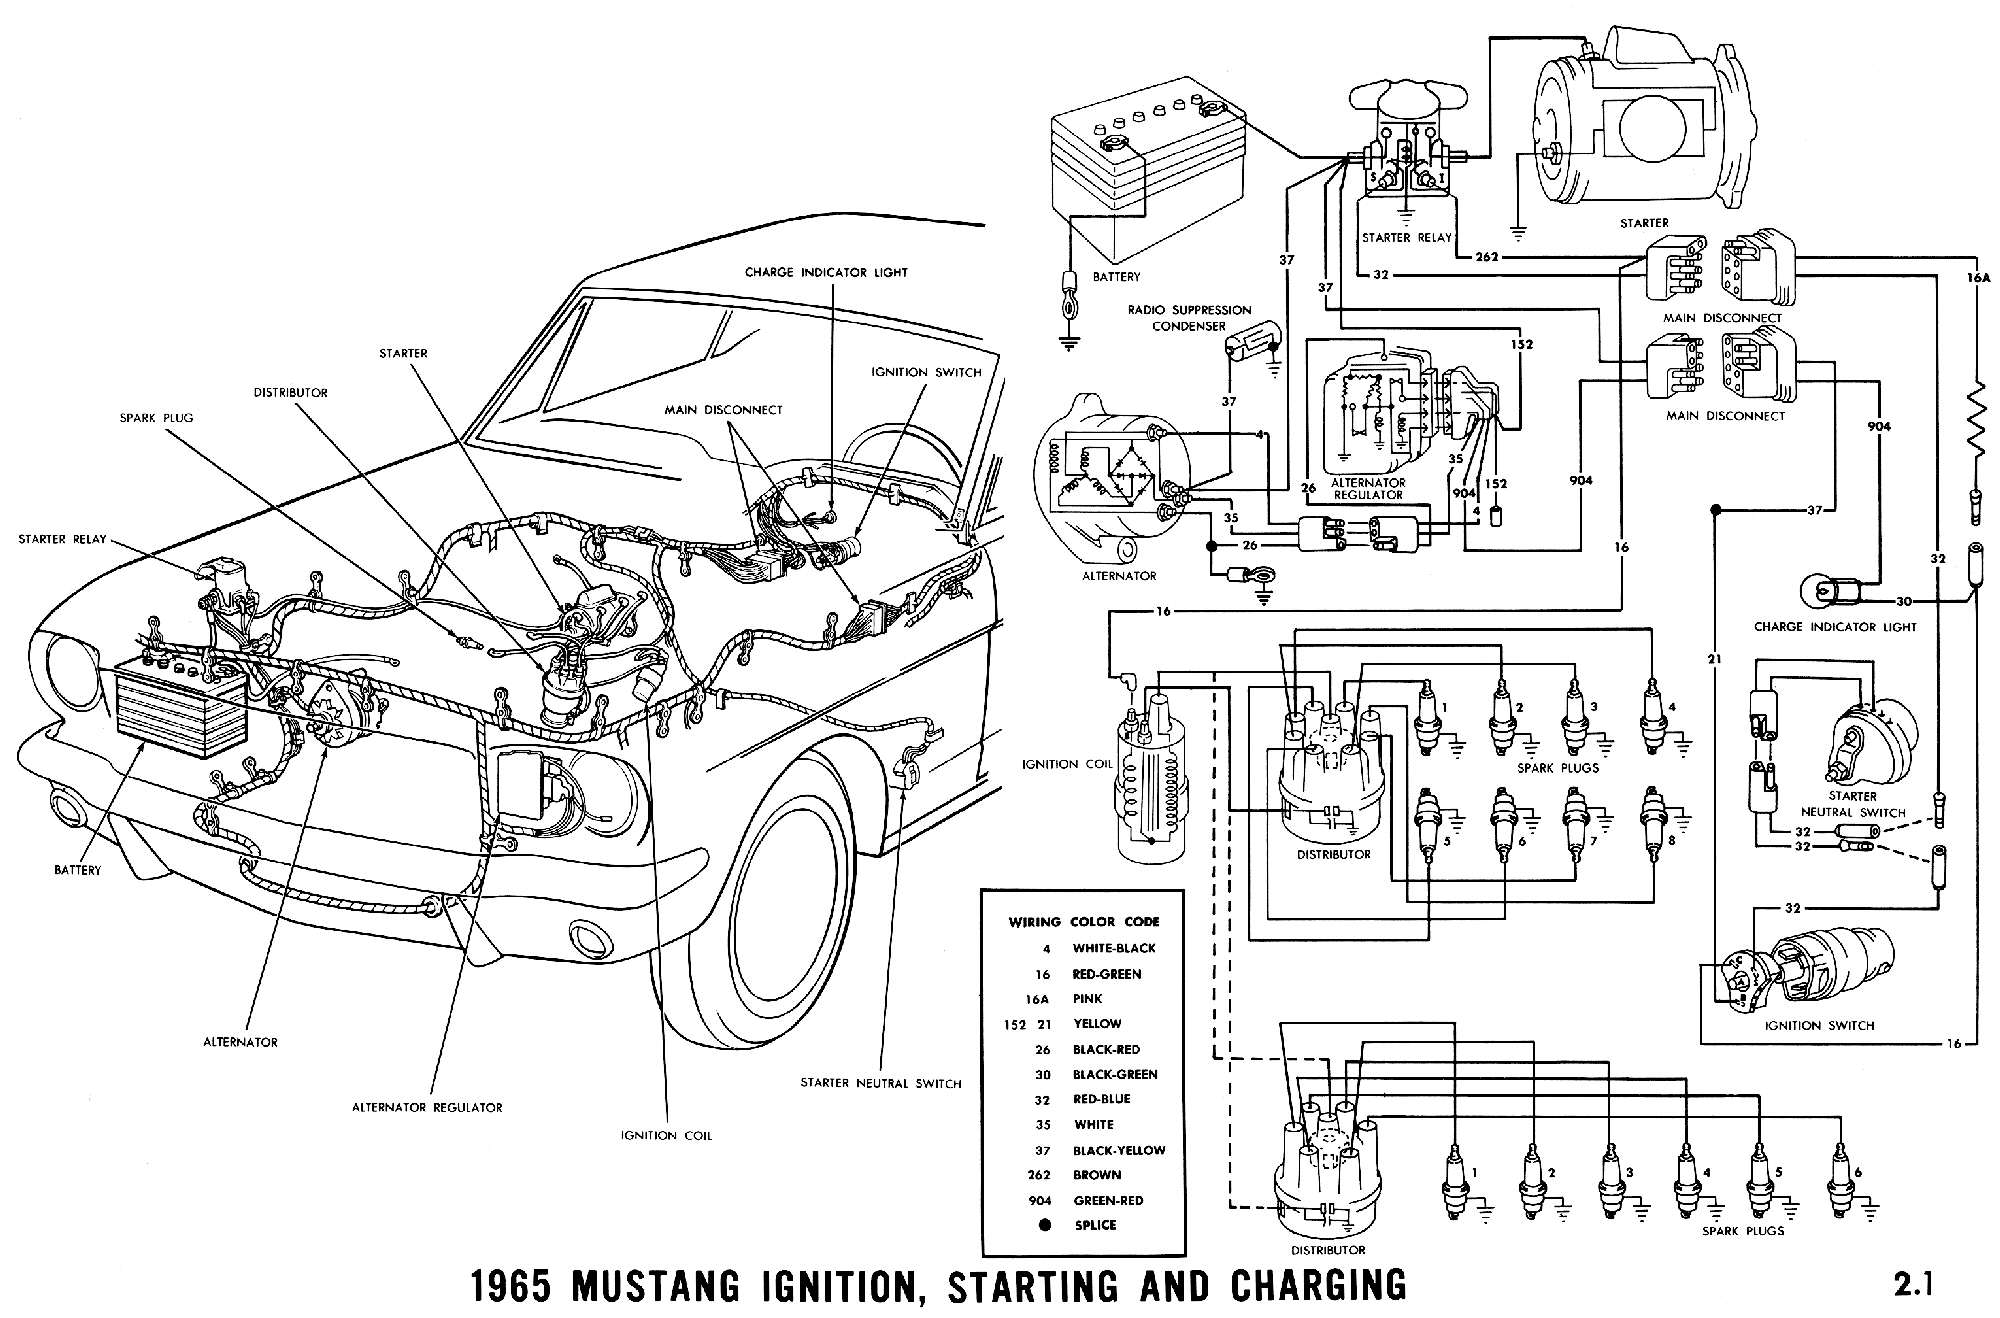 1965 Mustang Ignition, Starting and Charging Pictorial and Schematic.  Alternator ...